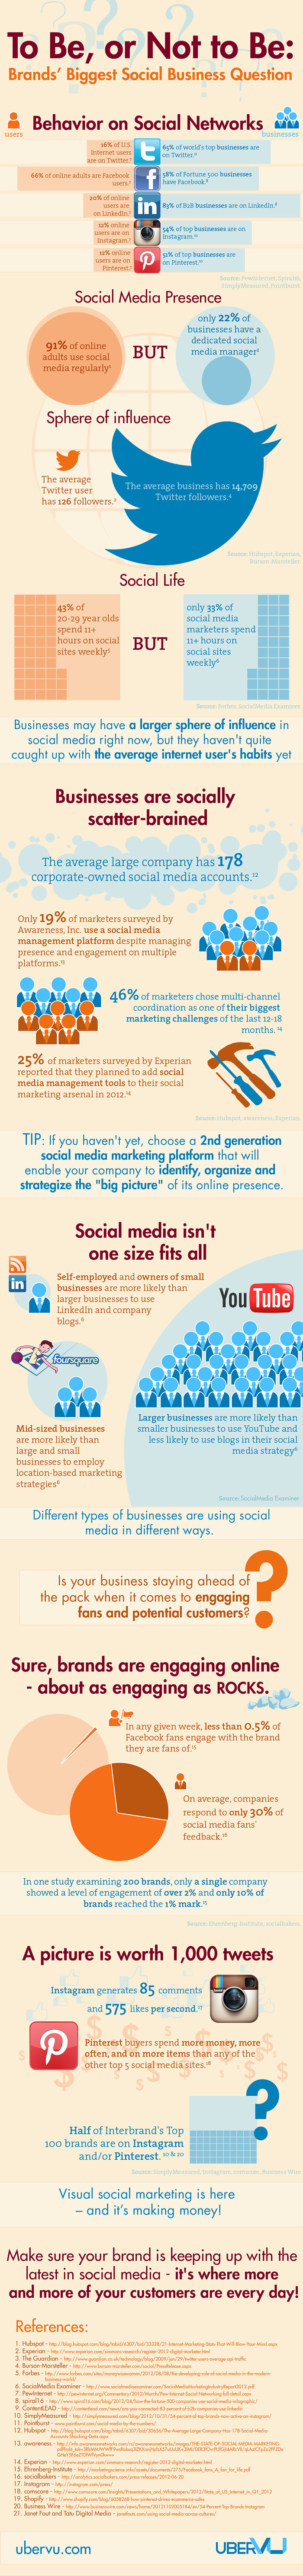 SocialBusinessInfographic_FINAL